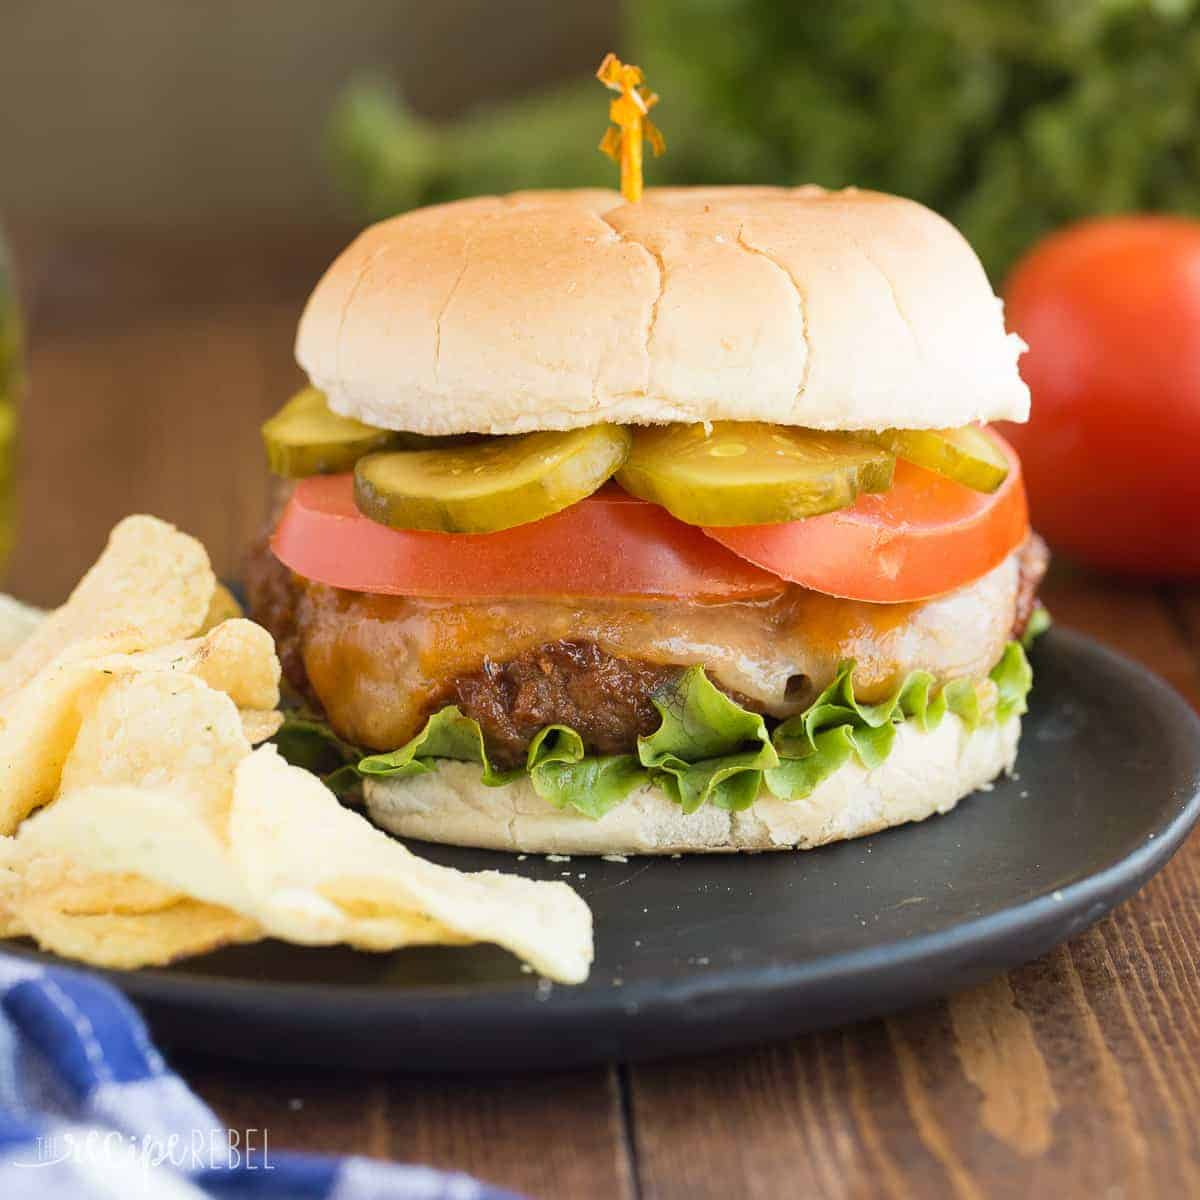 These are the BEST Burgers! Made with a mix of ground beef and ground pork, caramelized onions, balsamic vinegar, chili powder and MORE that makes them so much more flavorful than other burgers!